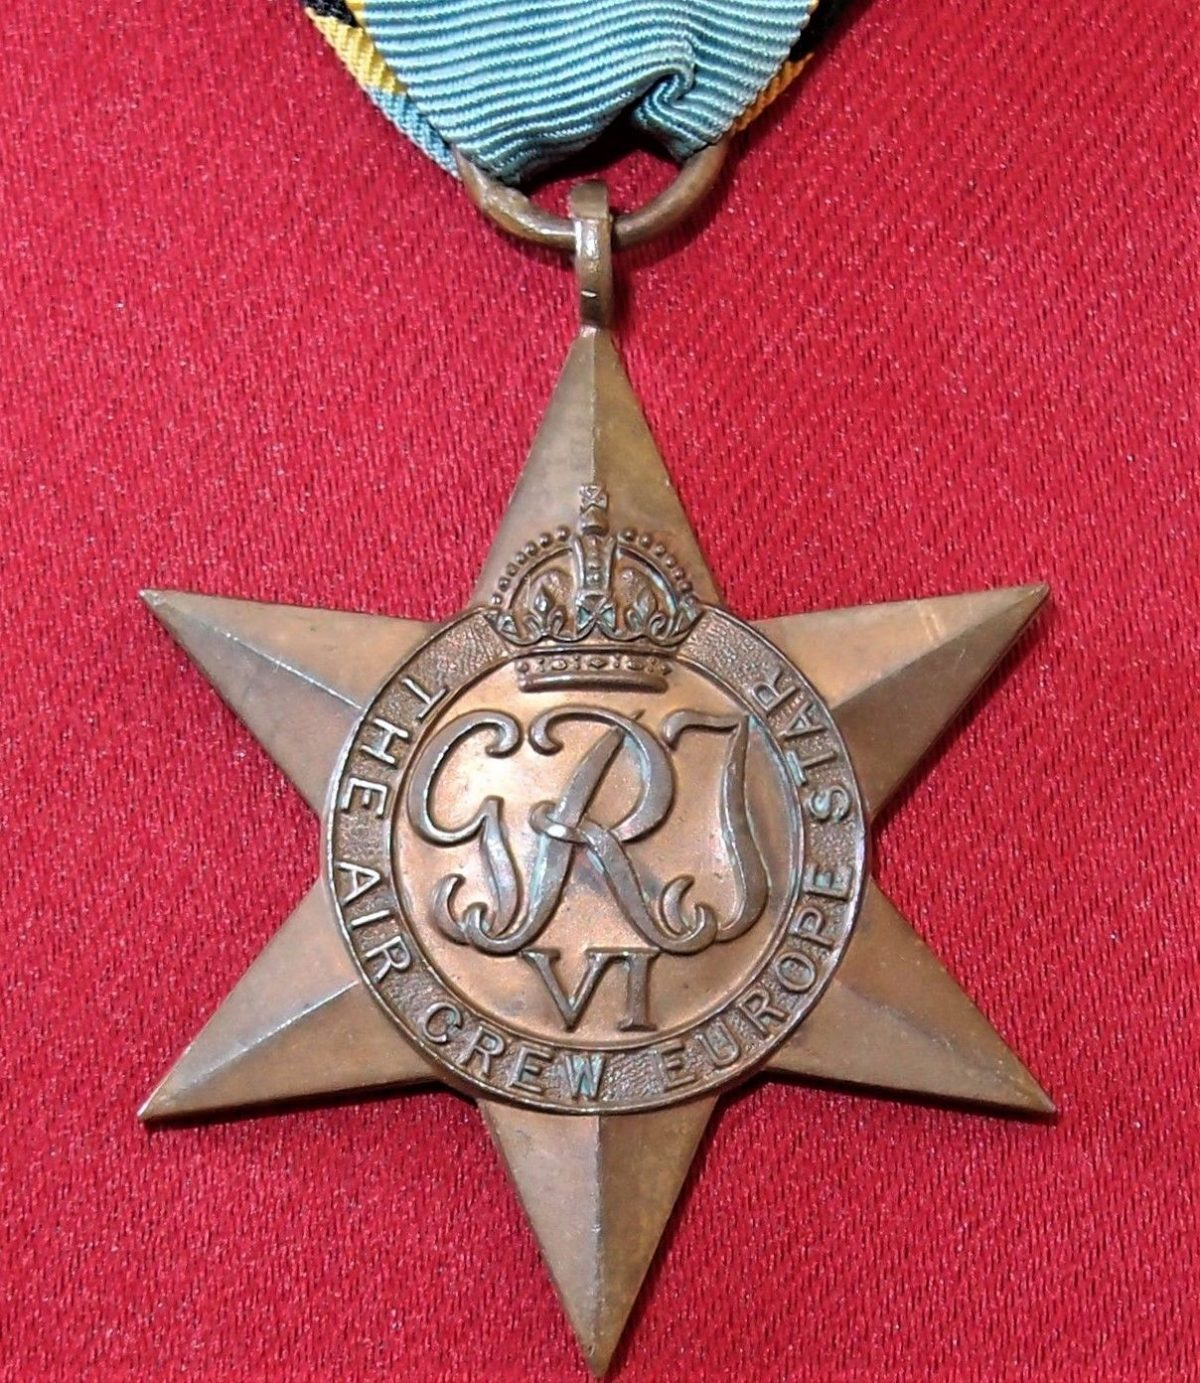 WW2 AIR CREW EUROPE STAR MEDAL 100% ORIGINAL ANZAC RAAF RAF BOMBER COMMAND